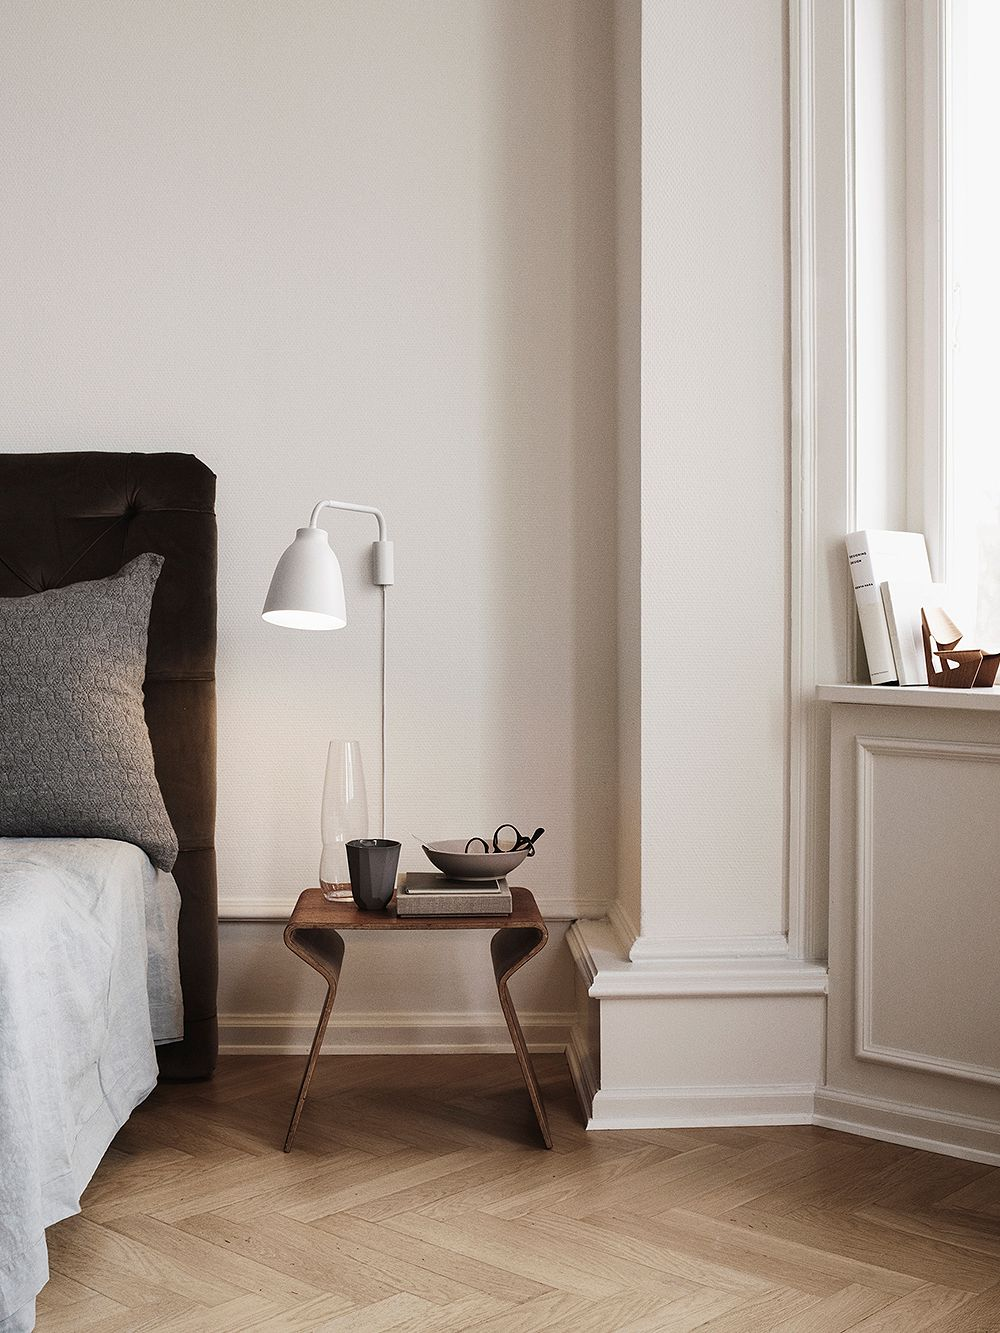 Lightyears Caravaggio Read wall lamp in white